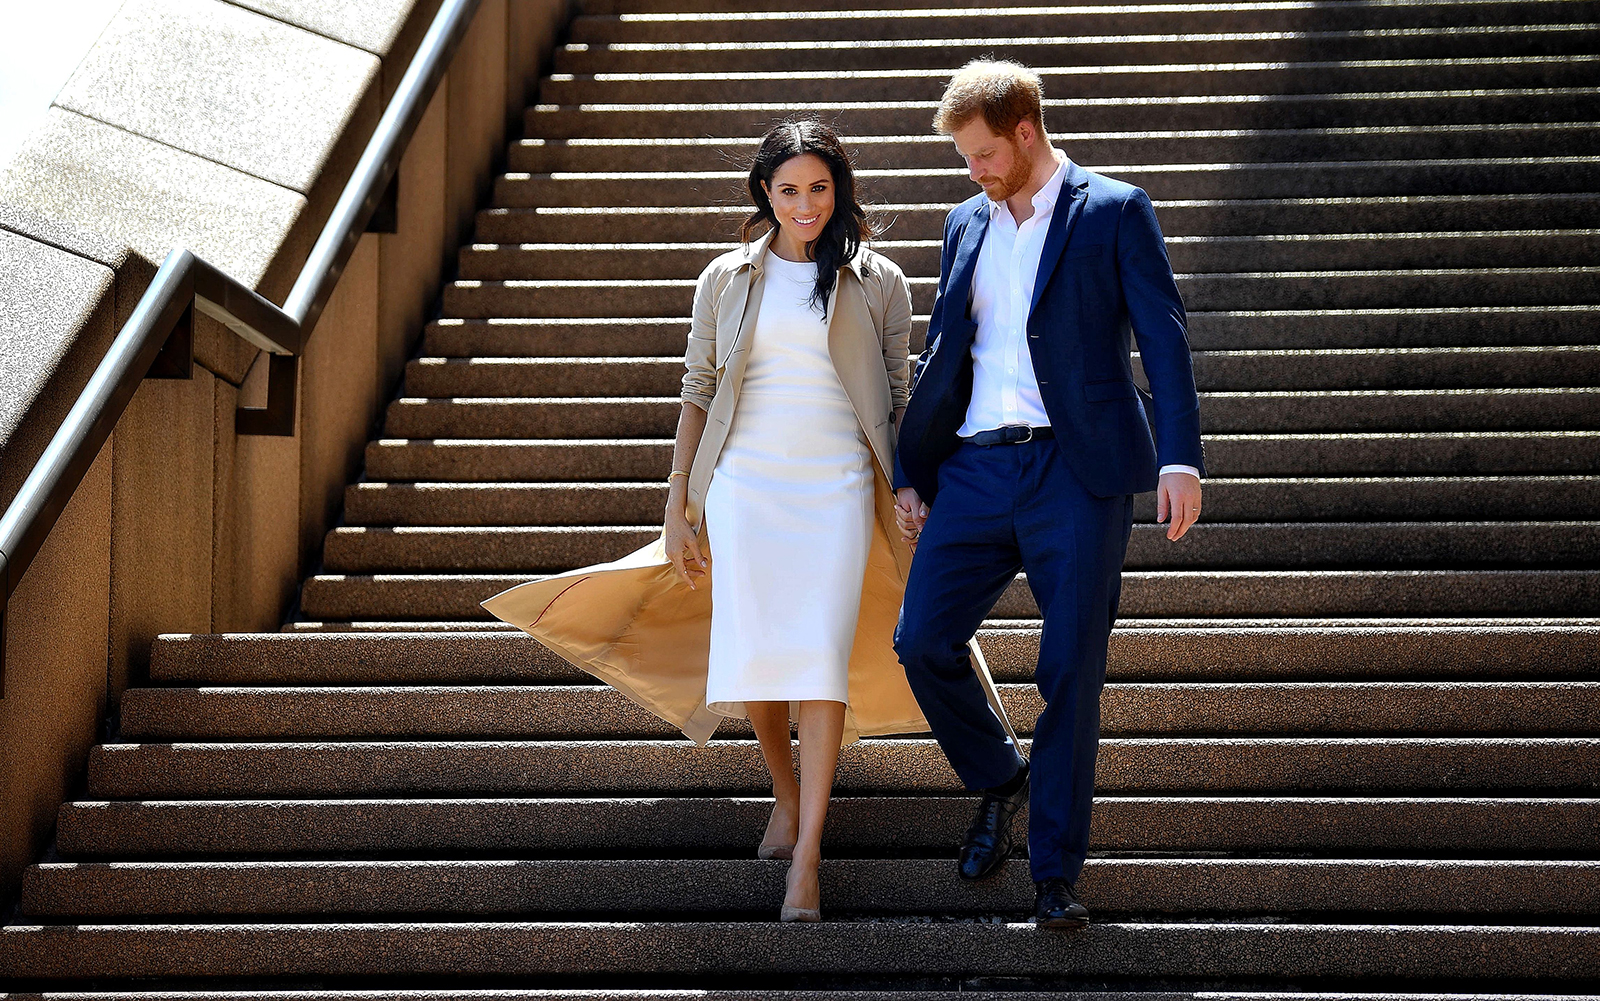 Britain's Prince Harry and his wife Meghan walk down the stairs of the iconic Opera House to meet people on October 16, 2018.